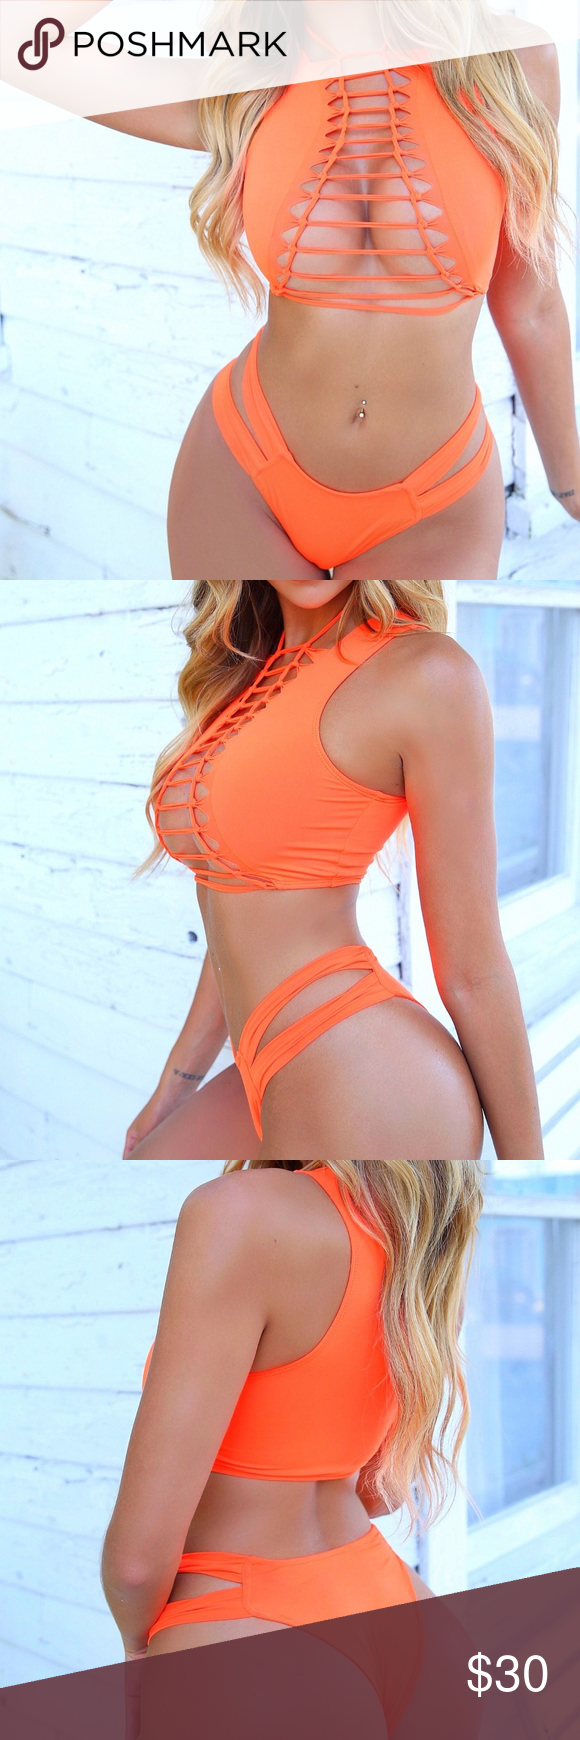 Photo of OMG Miami Swimwear/ Orange Peekaboo Bikini Meow! This is the hottest swimsuit on…